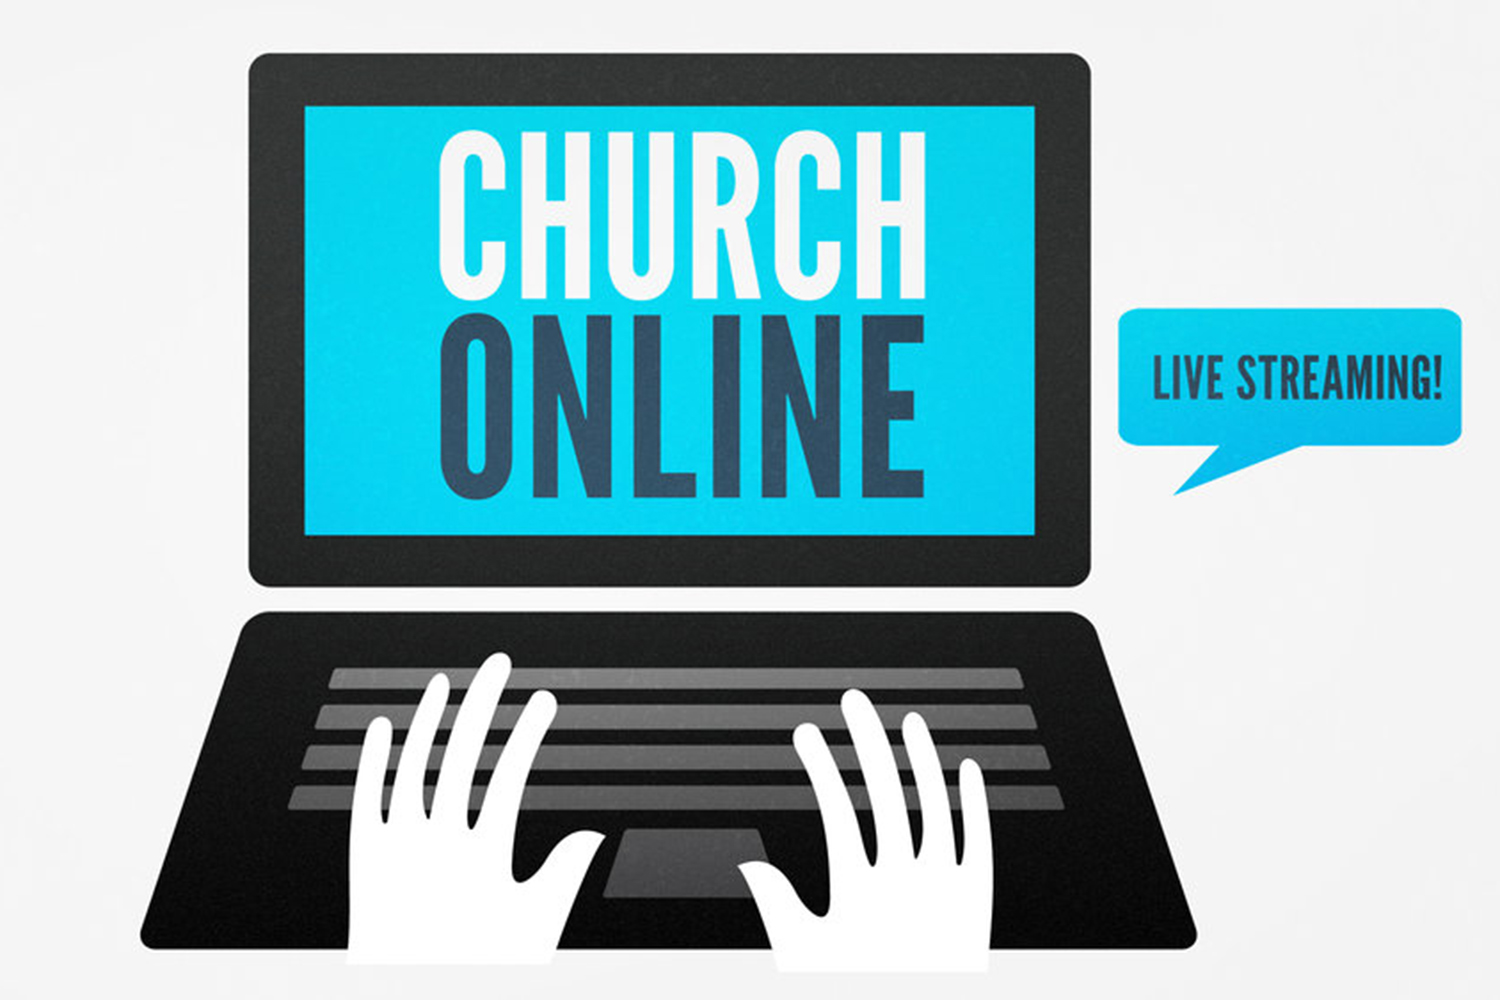 Computer with Church Online text on screen